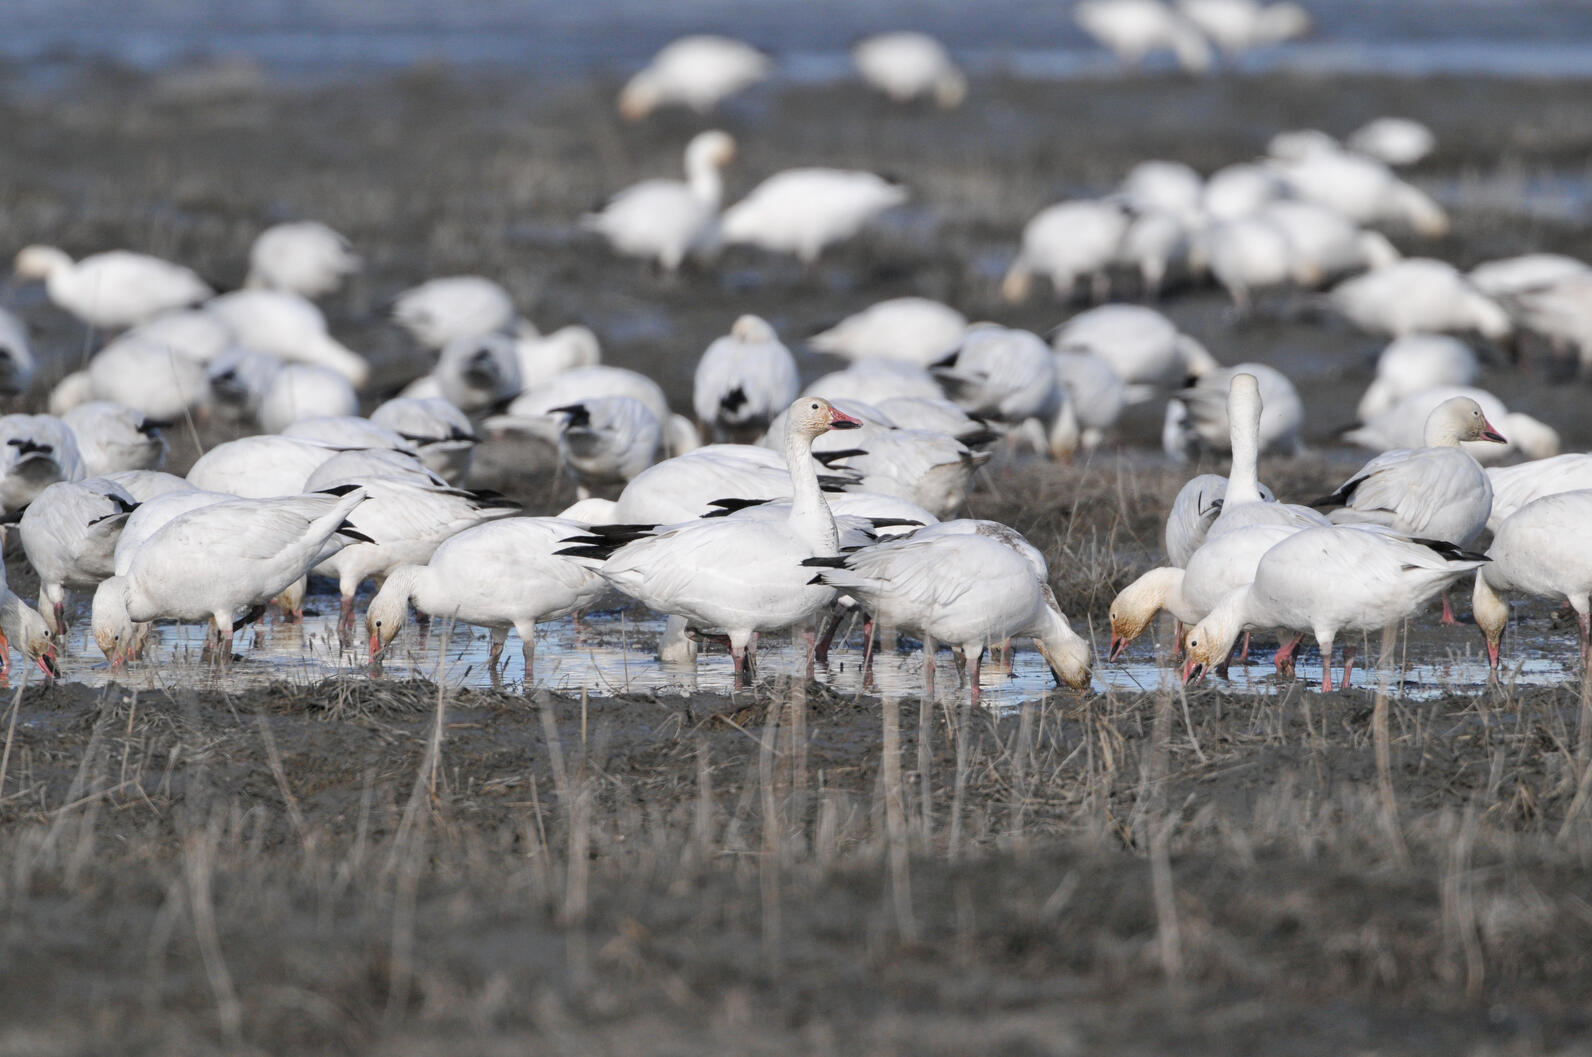 In 2016, thousands of snow geese died after landing on the Berkeley Pitt, a toxic waste pond.